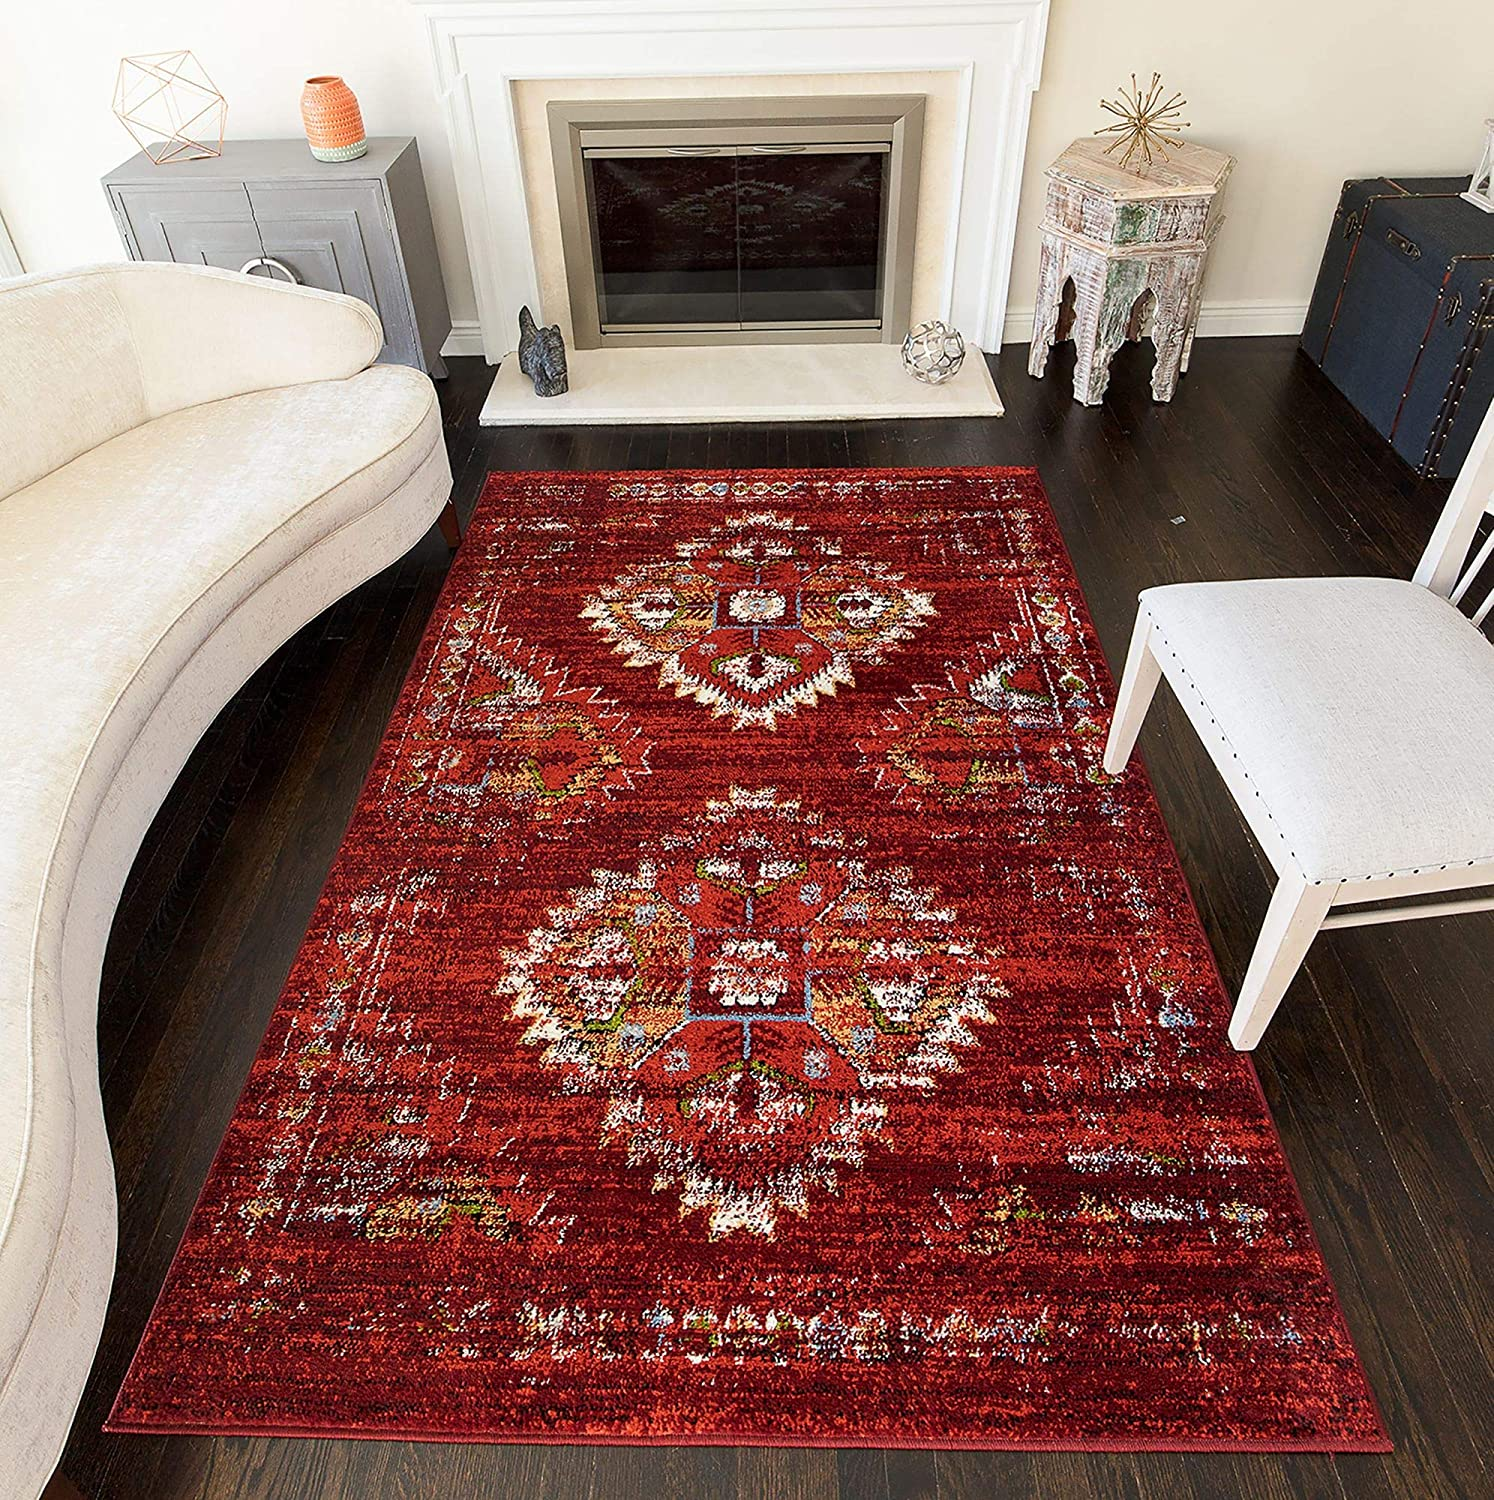 Amazon Com Rugs America Bradford Burnt Red Moroccan Tribal Area Rug 9 X 12 Furniture Decor